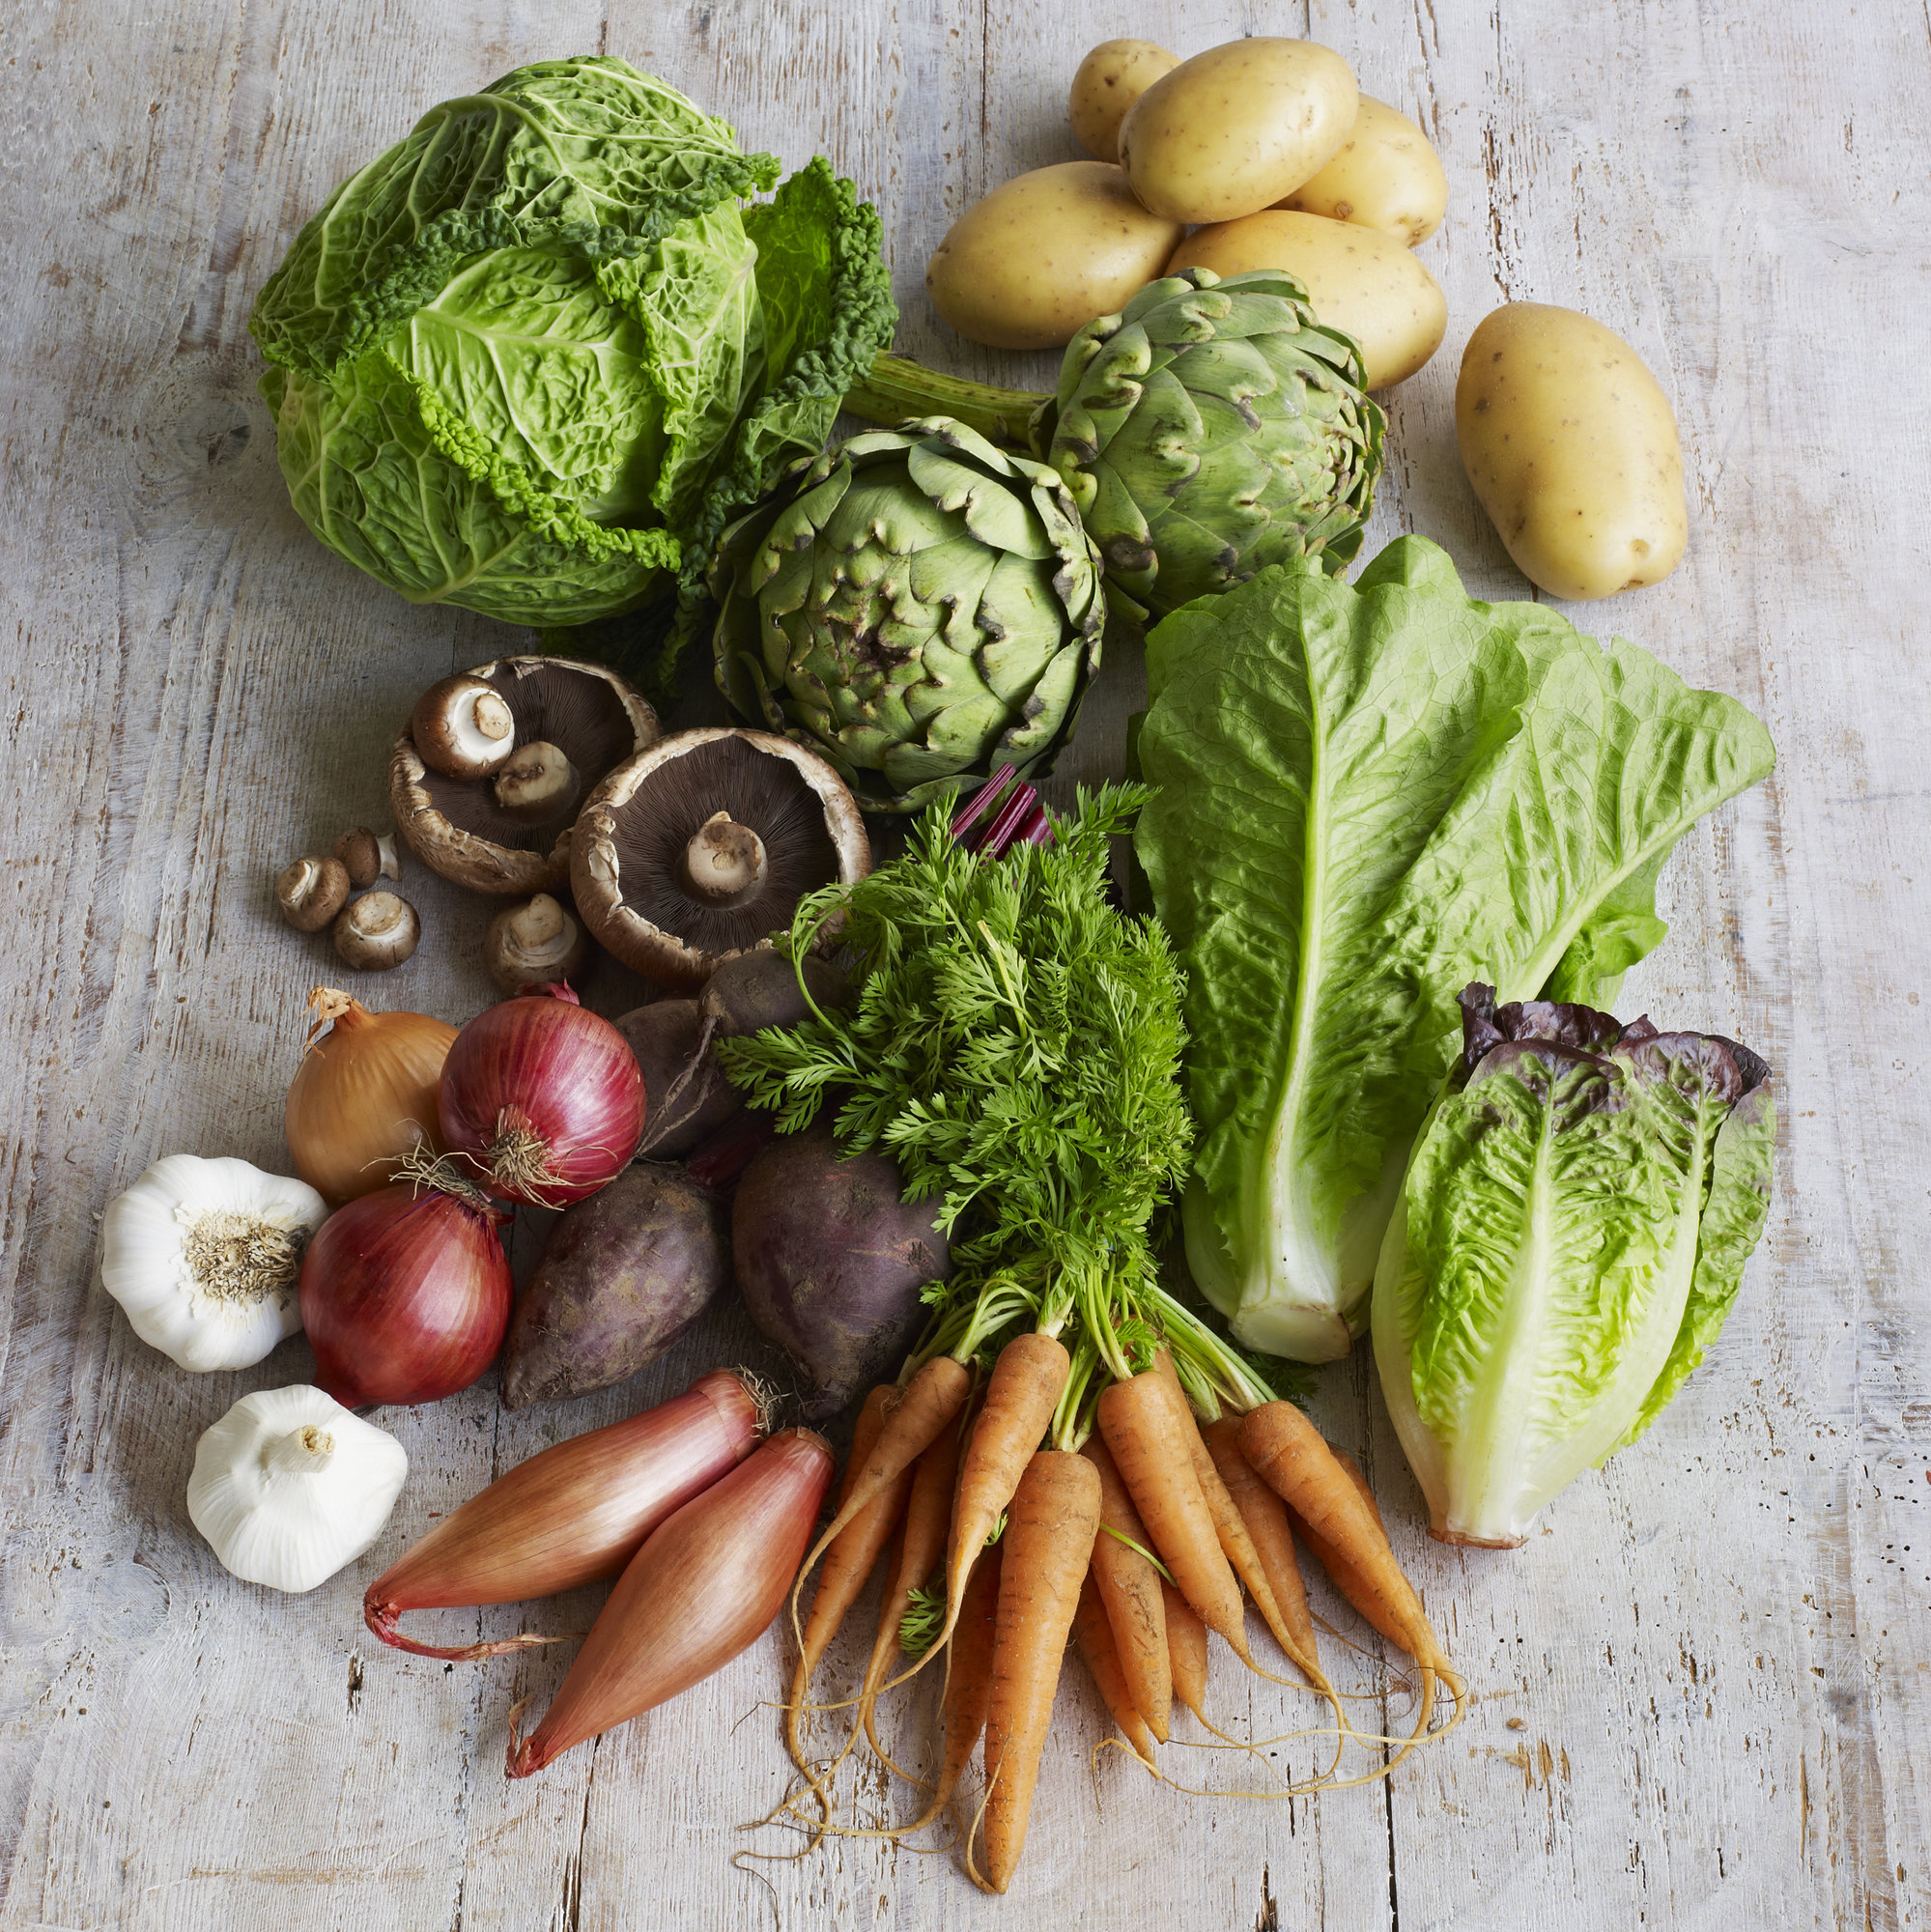 6 Ways To Add More Veggies To Your Diet